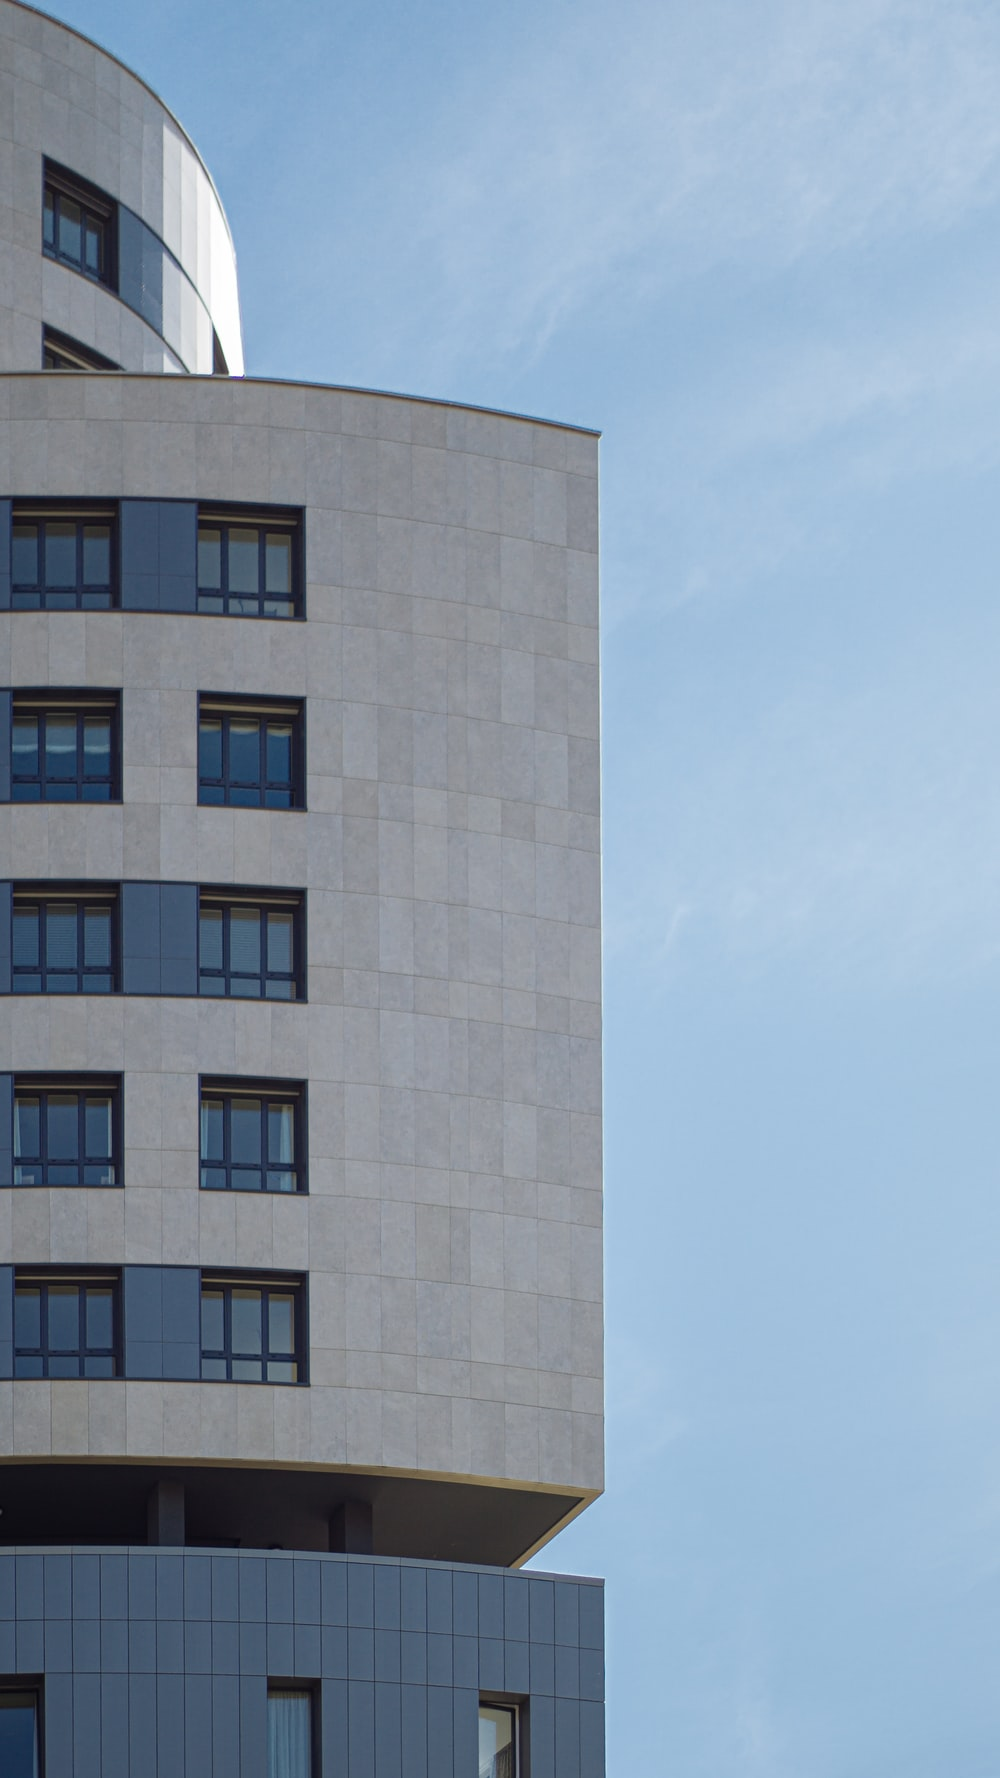 white and blue concrete building at daytime close-up photography